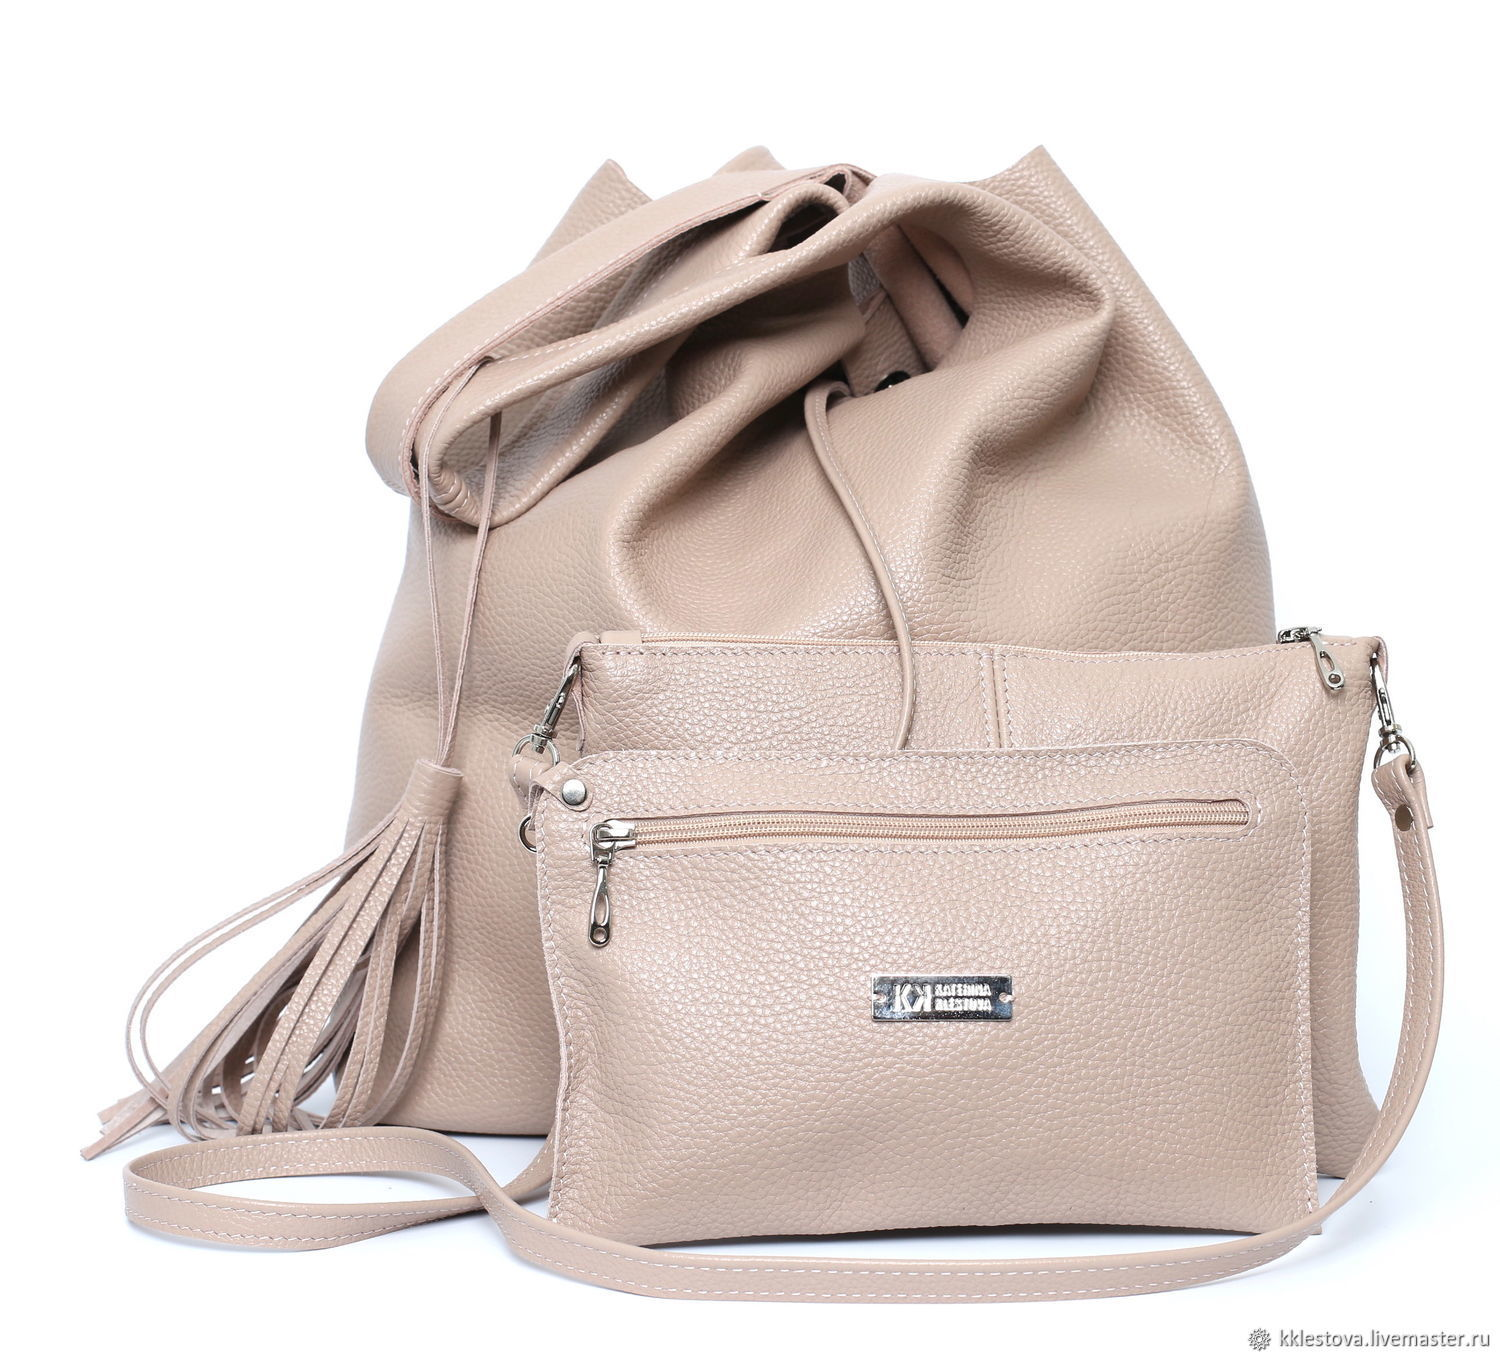 Bag Genuine Leather bag with cosmetic bag Accessories Set, Sacks, Moscow,  Фото №1